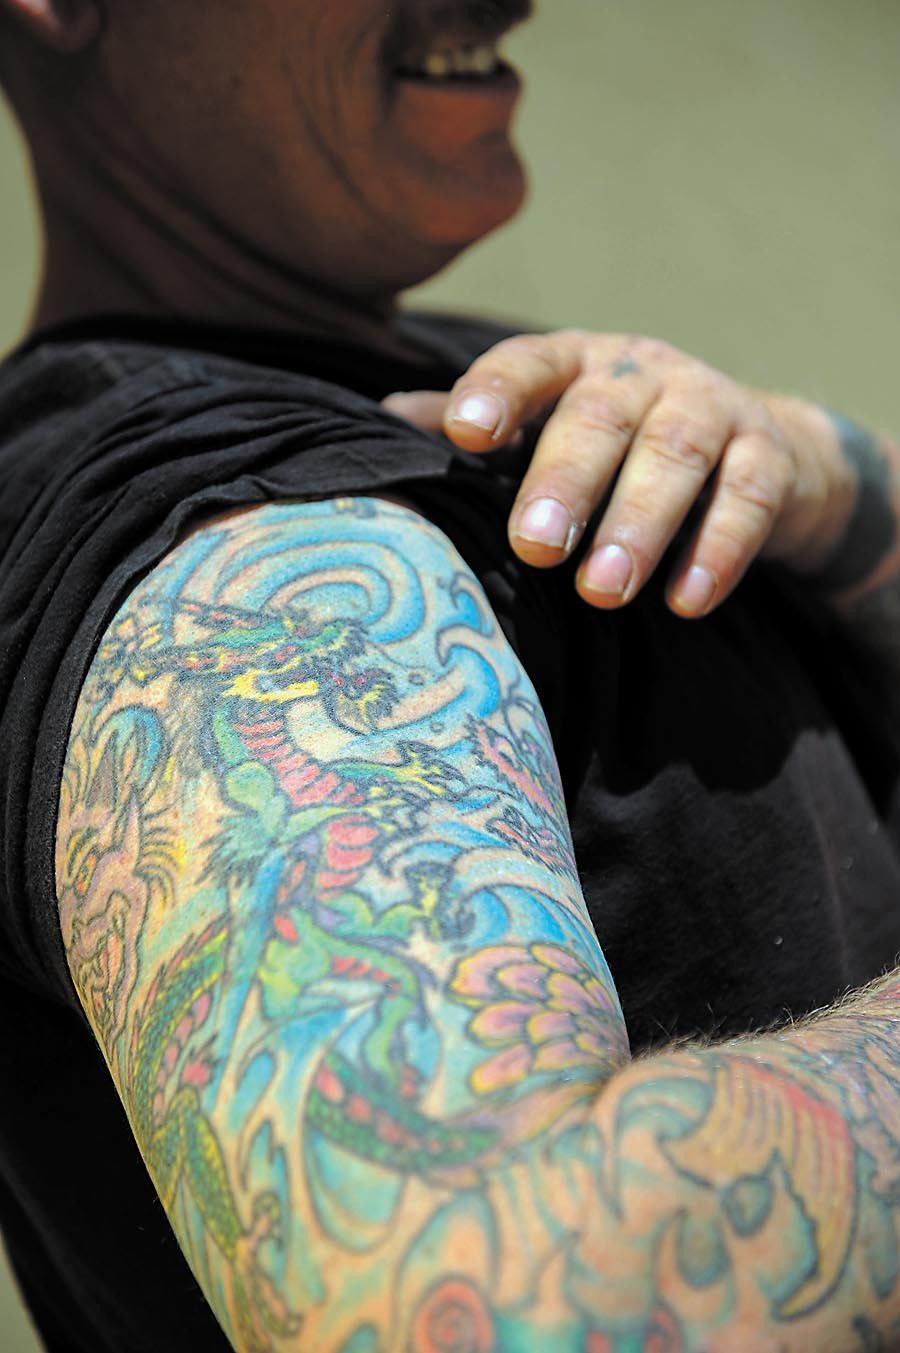 The oldest tattoo shop in New Orleans | News coverage | theadvocate.com